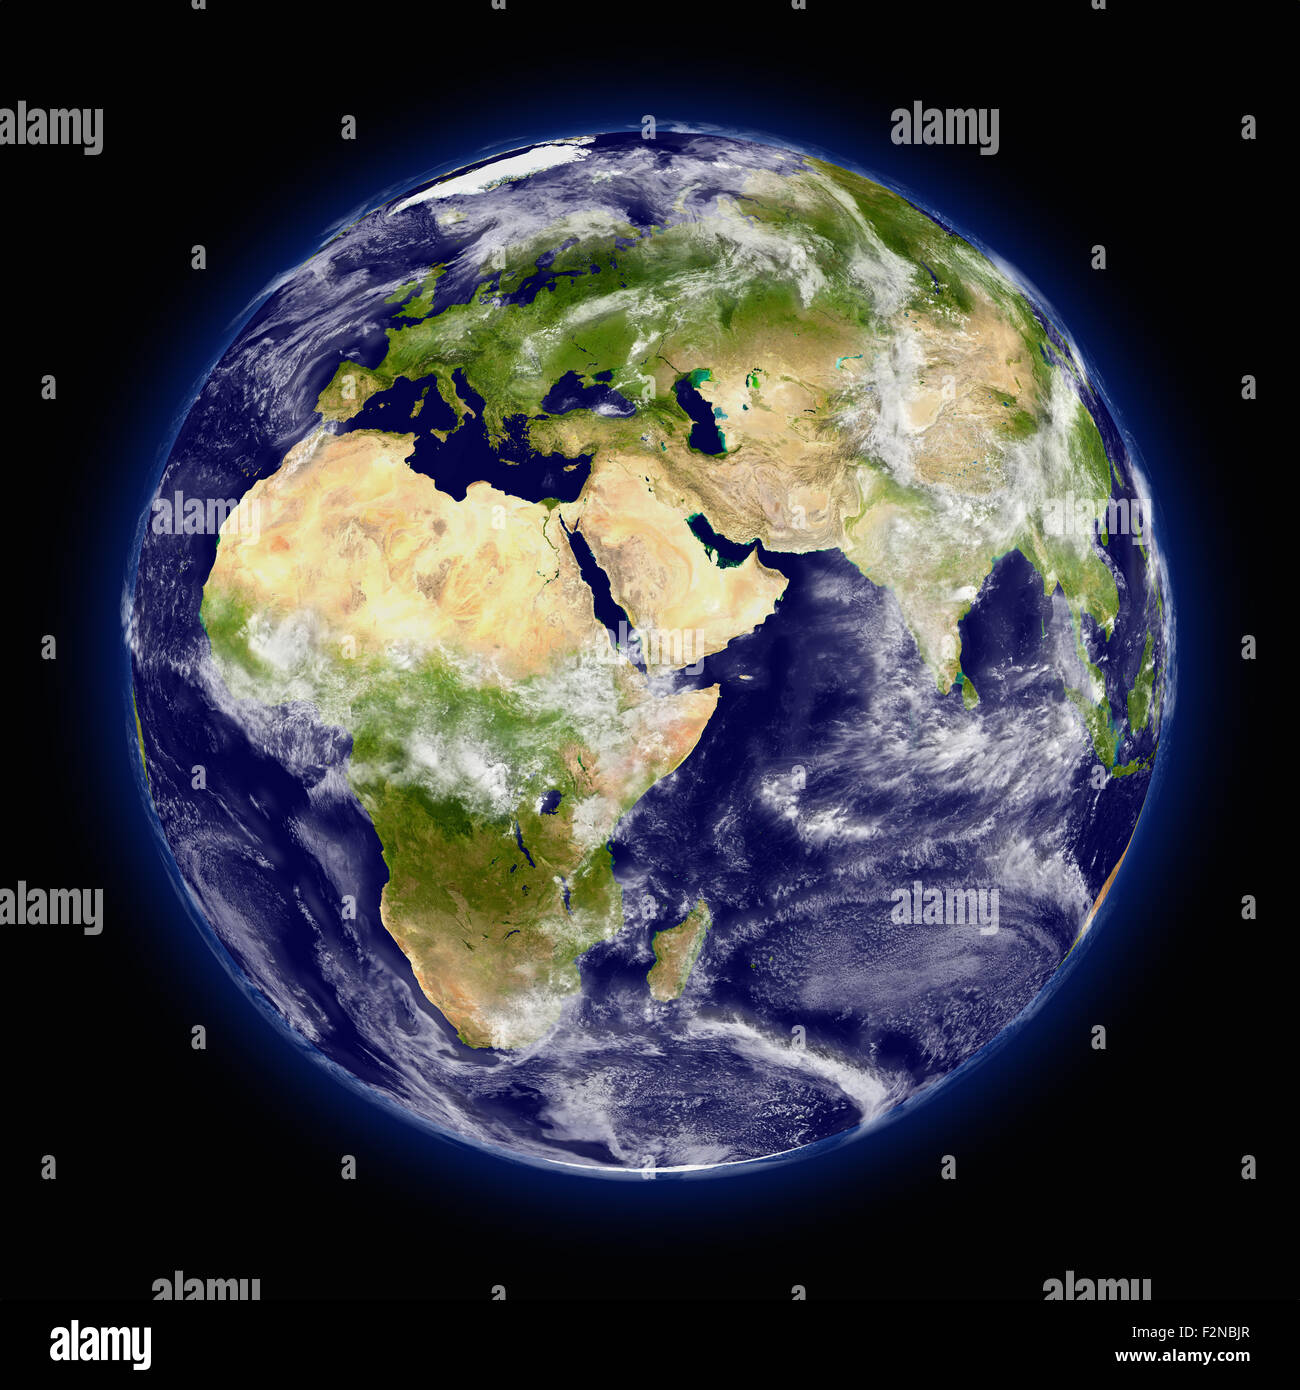 Realistic illustration of planet Earth as seen from space facing Africa, Europe and middle east region - Stock Image